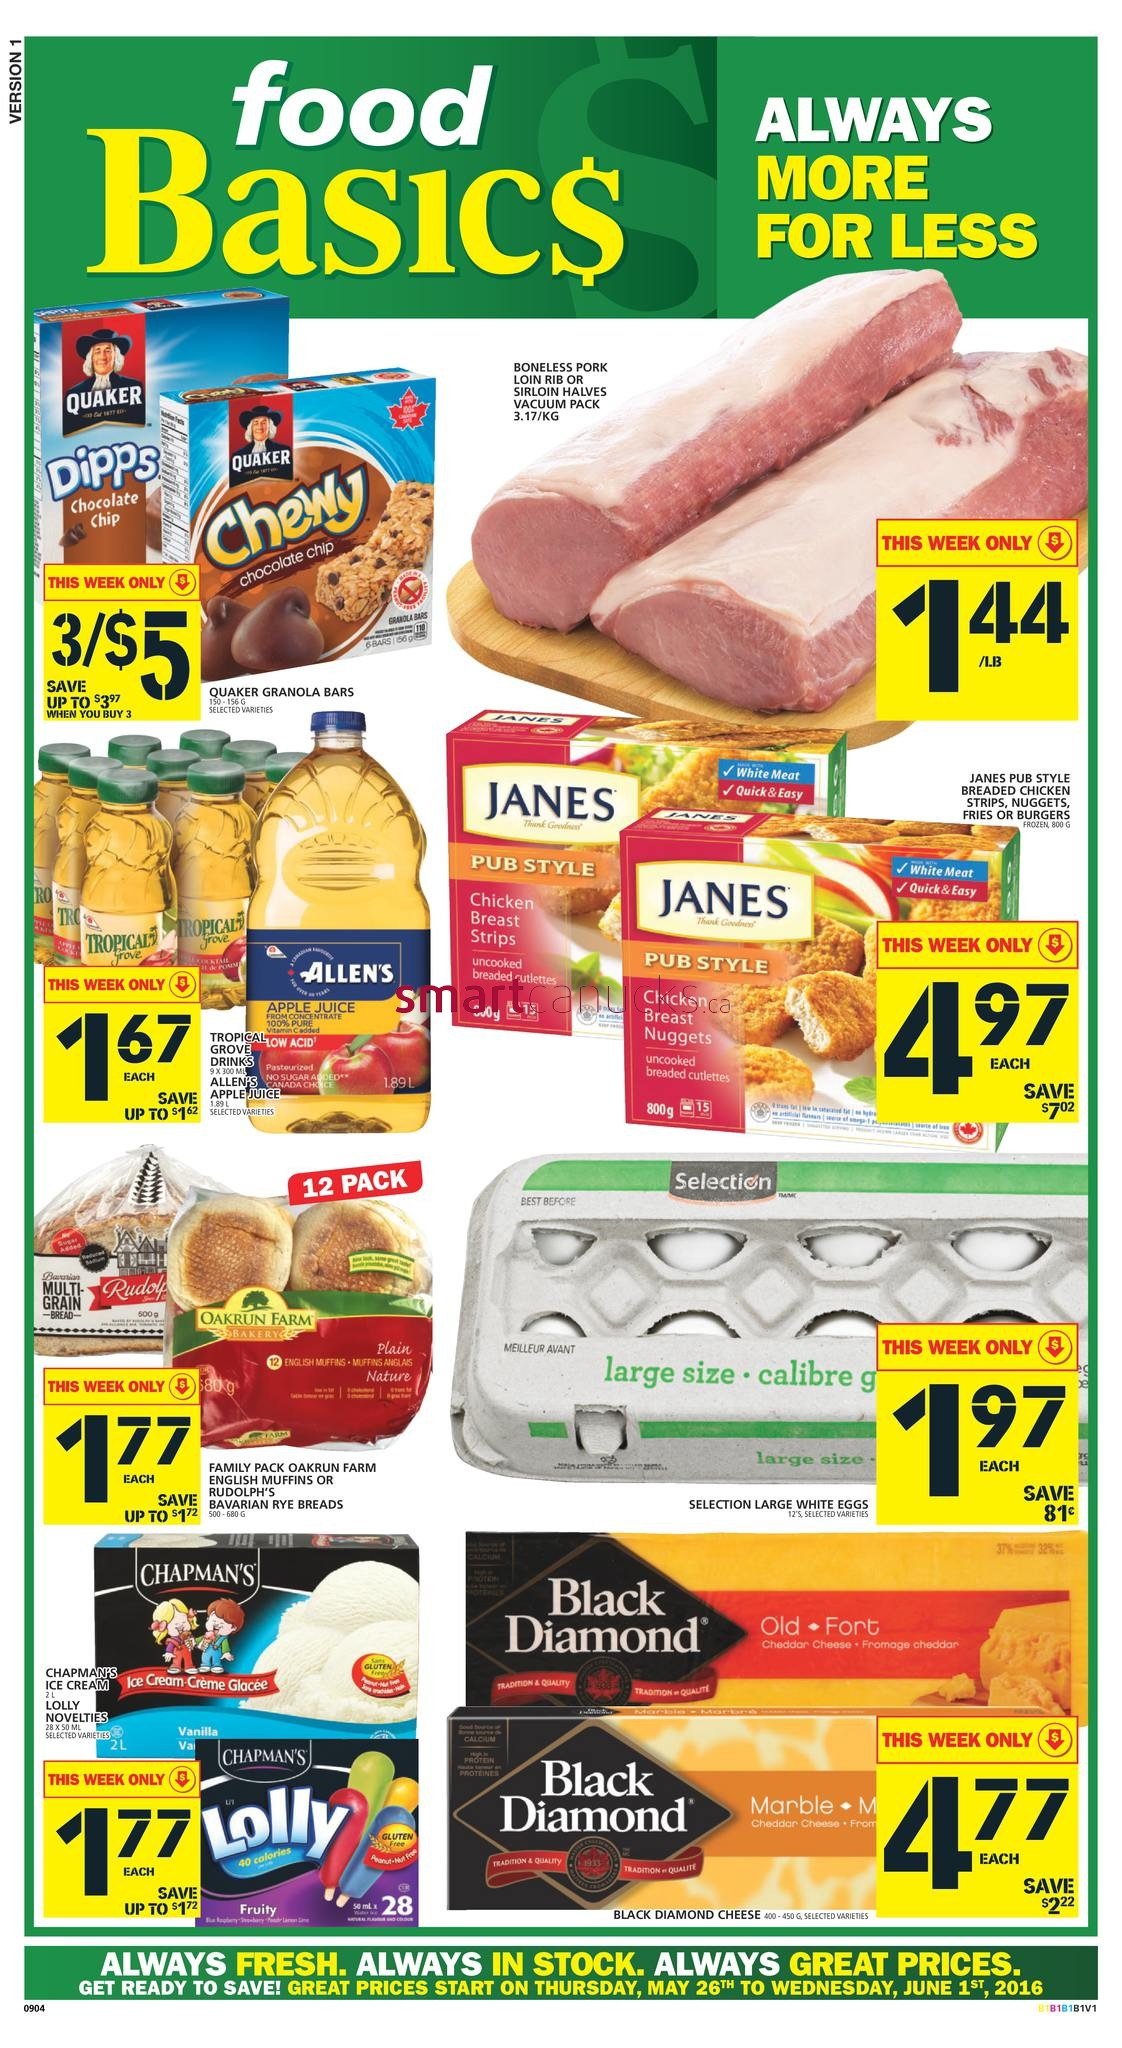 This Week S Food Basics Flyer